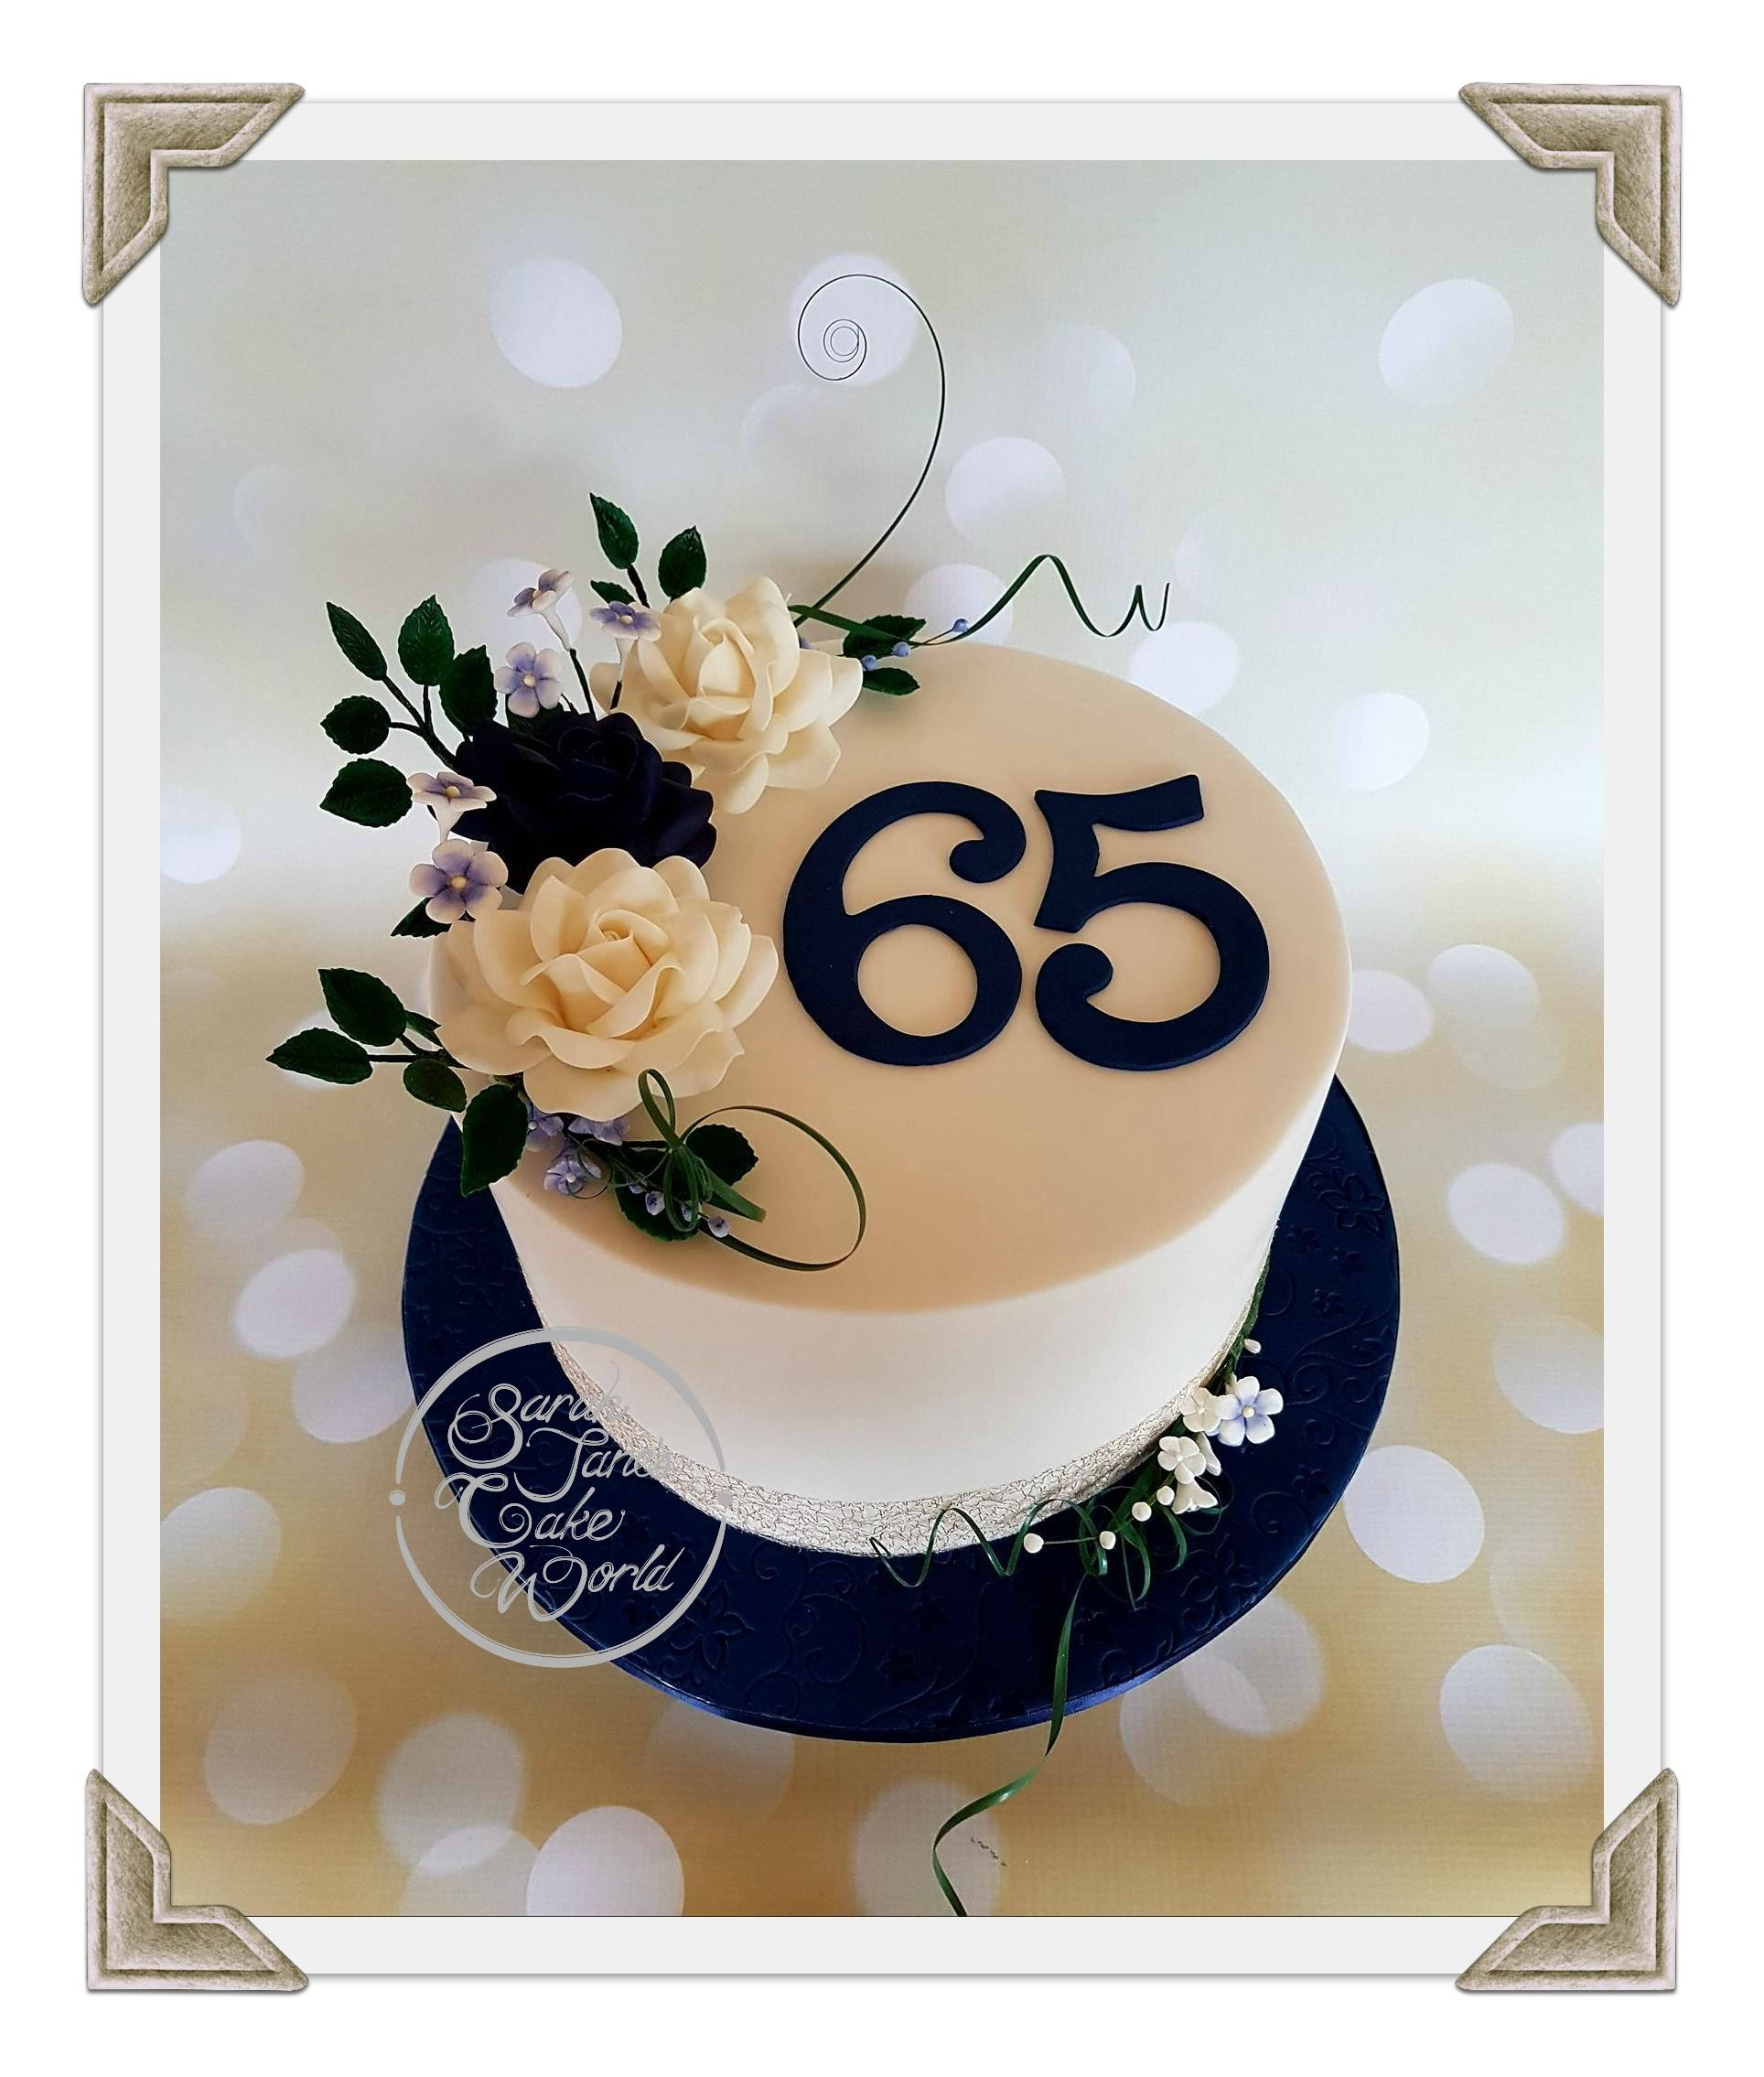 Cake Ideas For Wedding Anniversary: 65th (sapphire) Wedding Anniversary Cake